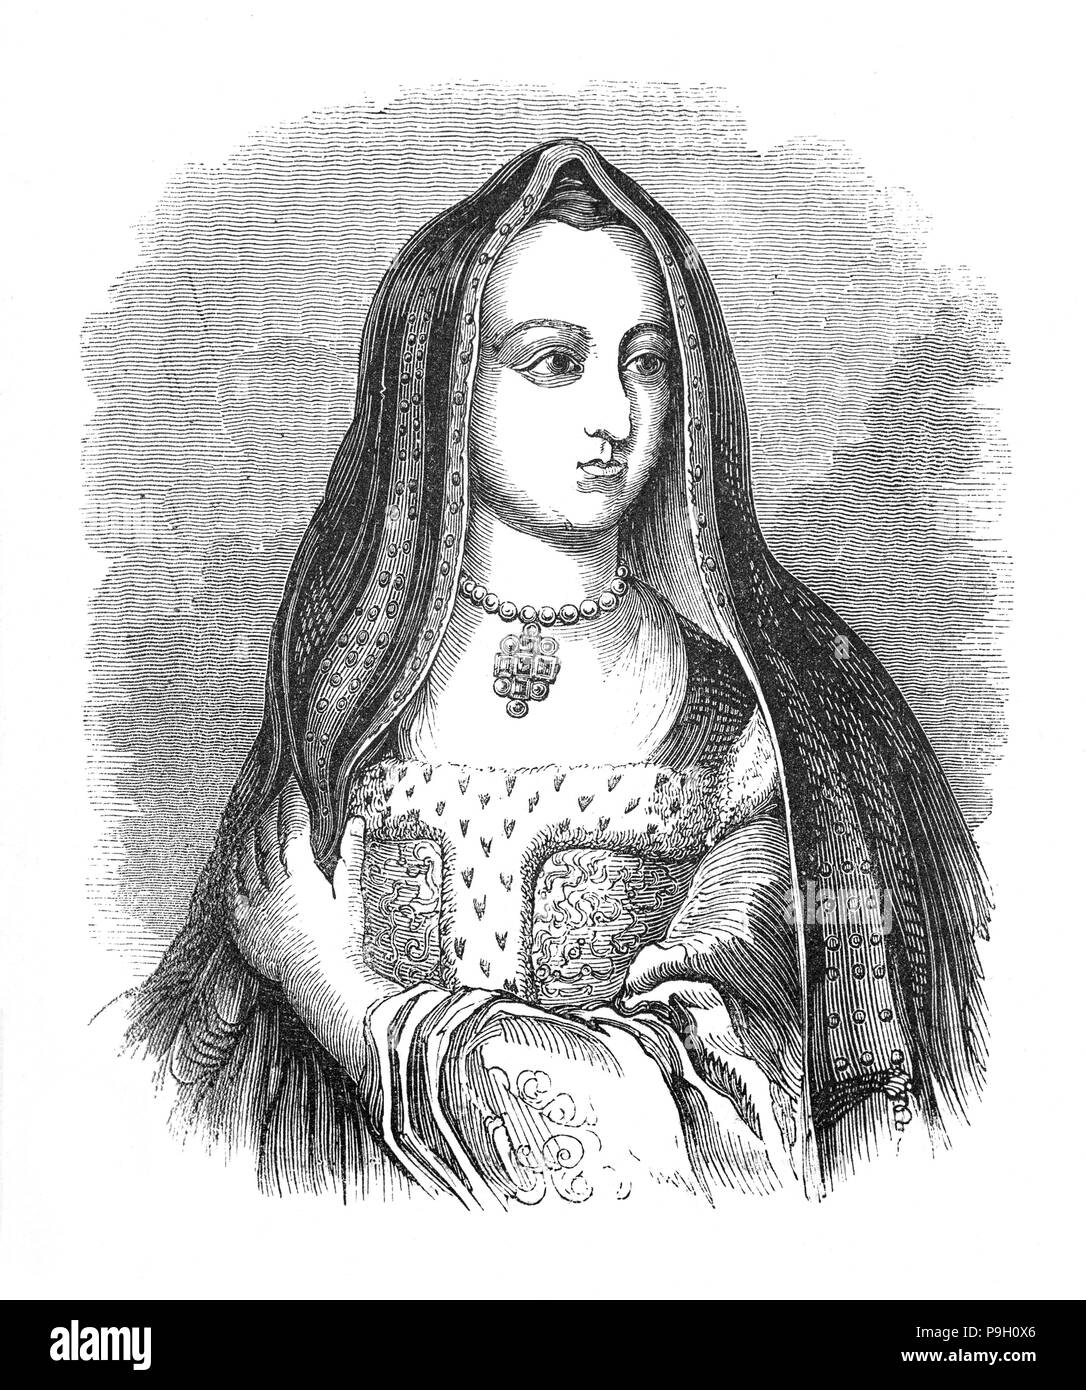 Elizabeth of York (1466 – 1503) was the wife of Henry VII and the first Tudor queen. The daughter of Edward IV and niece of Richard III, she married Henry in 1485, following the latter's victory at the Battle of Bosworth Field, which started the last phase of the Wars of the Roses. Together, she and Henry had a total of four sons, three of whom died before their father, leaving their brother, Henry VIII, to succeed his father as king. - Stock Image